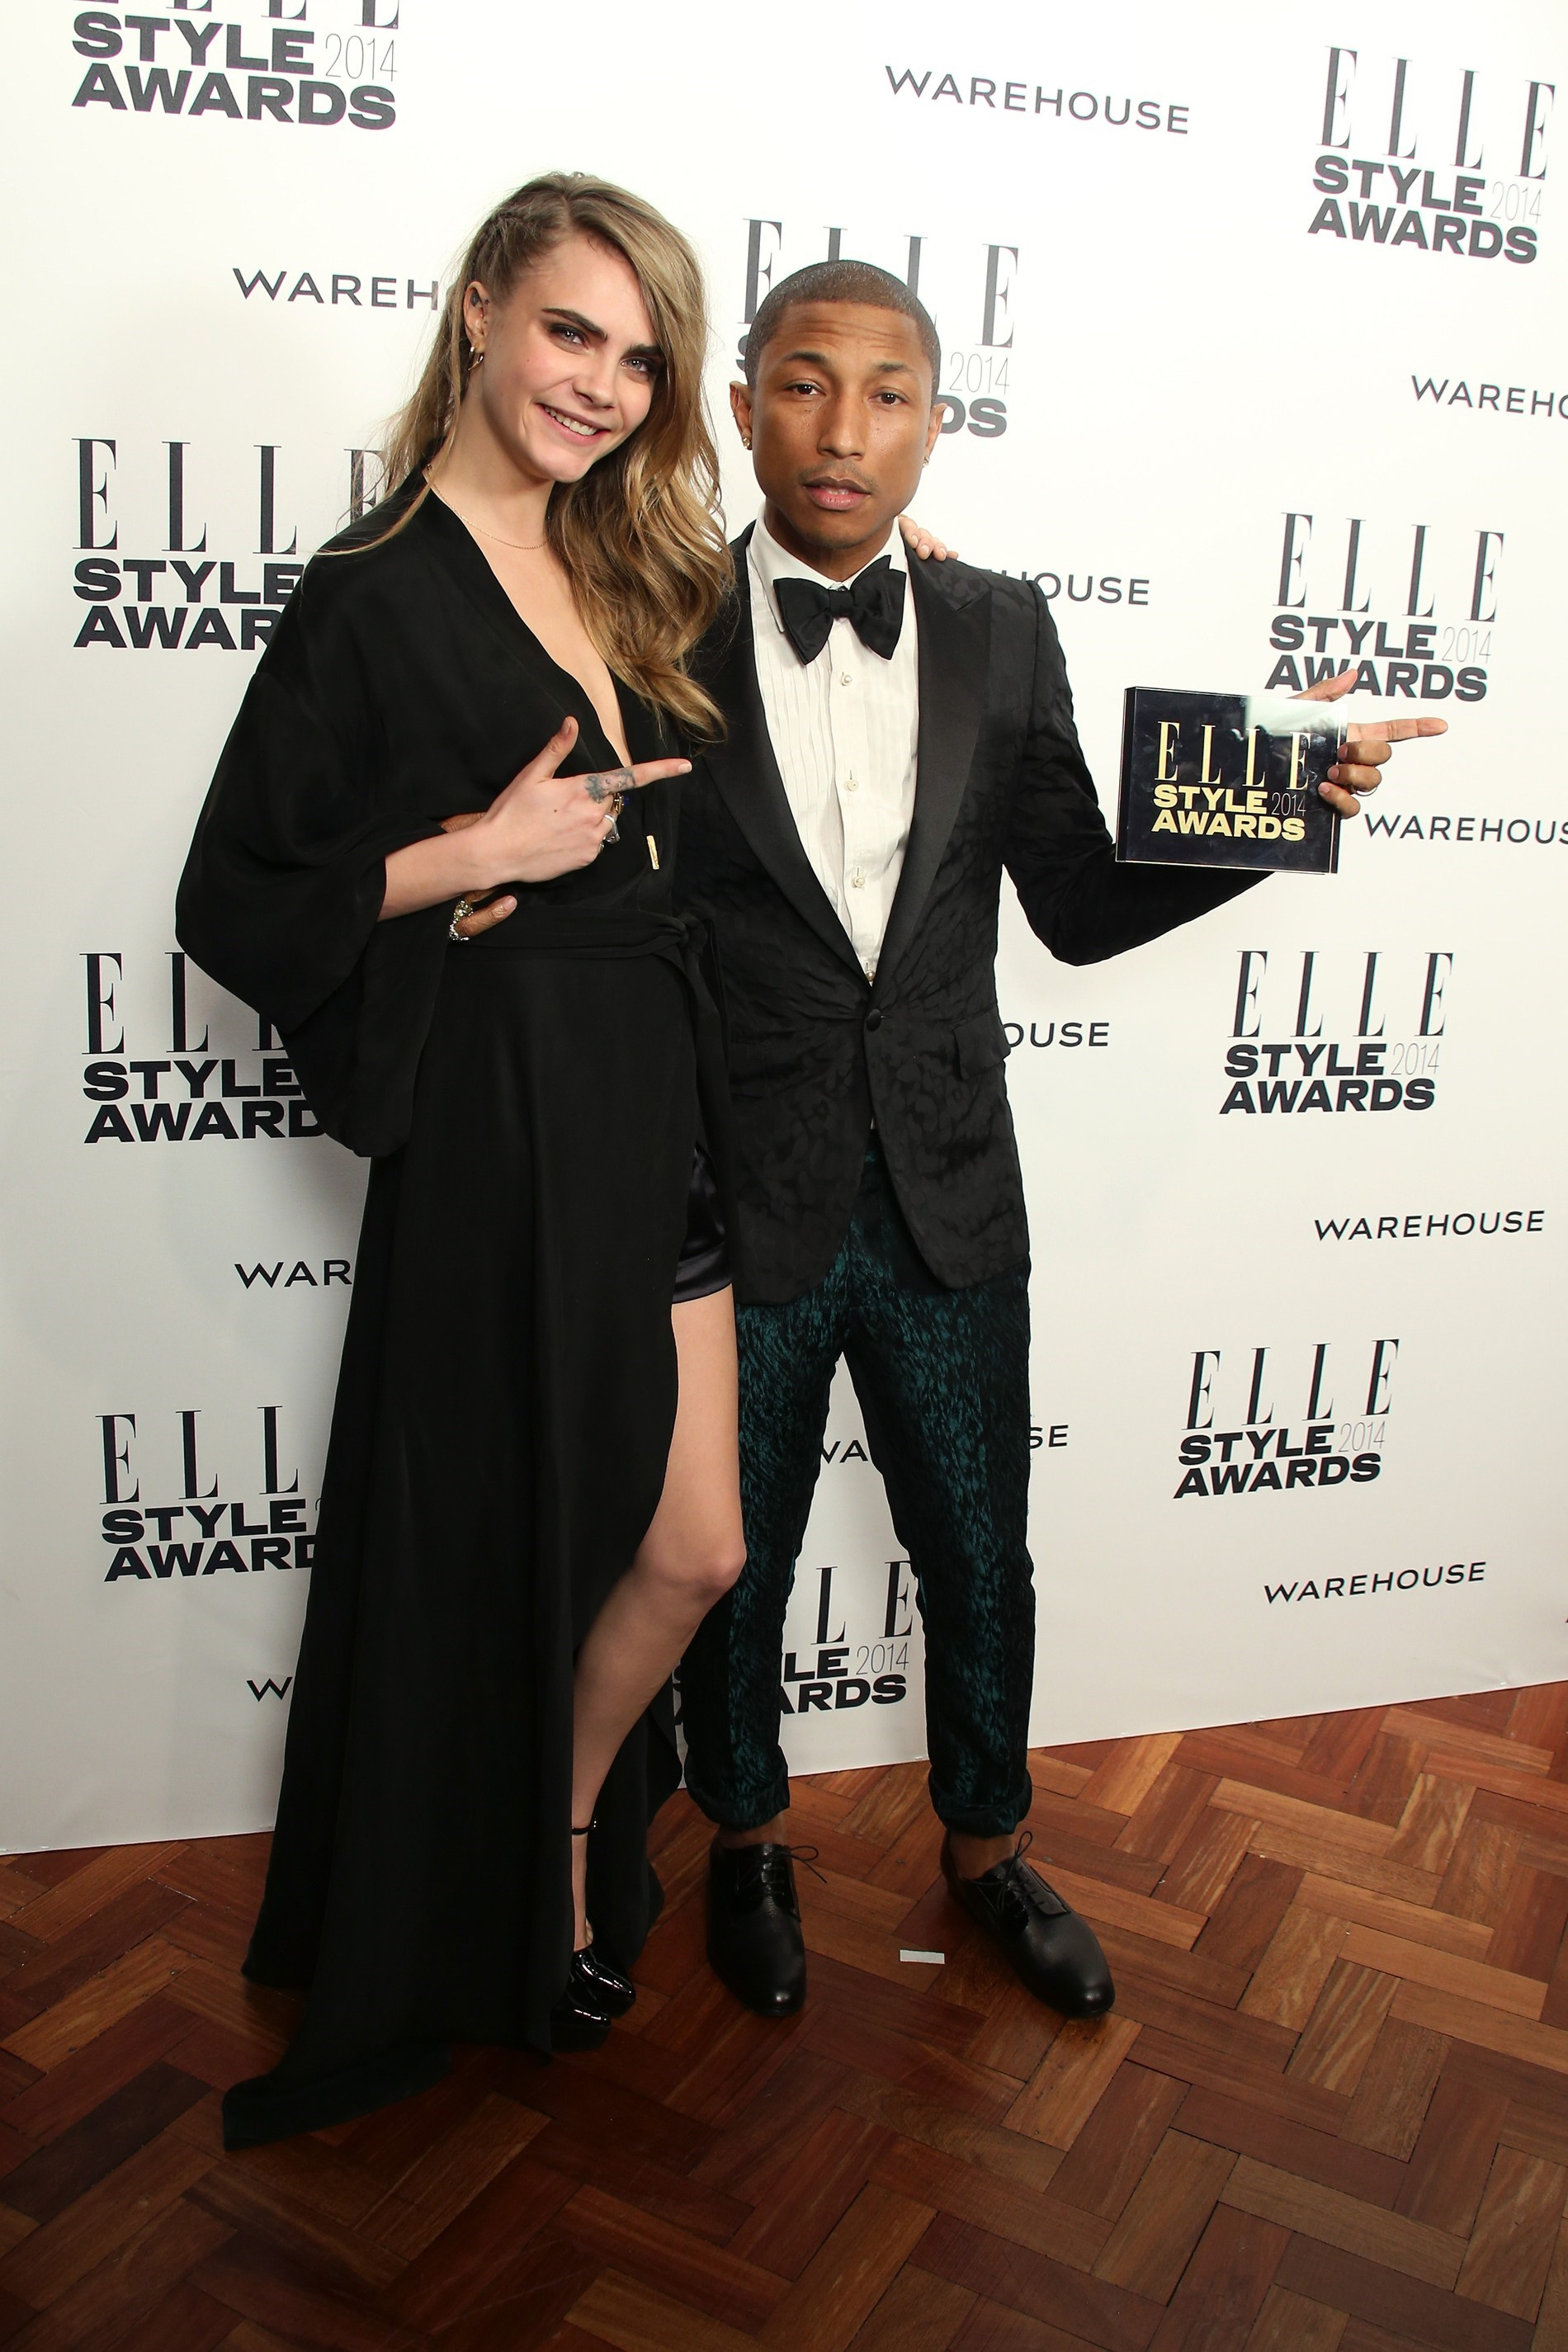 Cara Delevingne and Pharrell Williams at the 2014 ELLE Style Awards